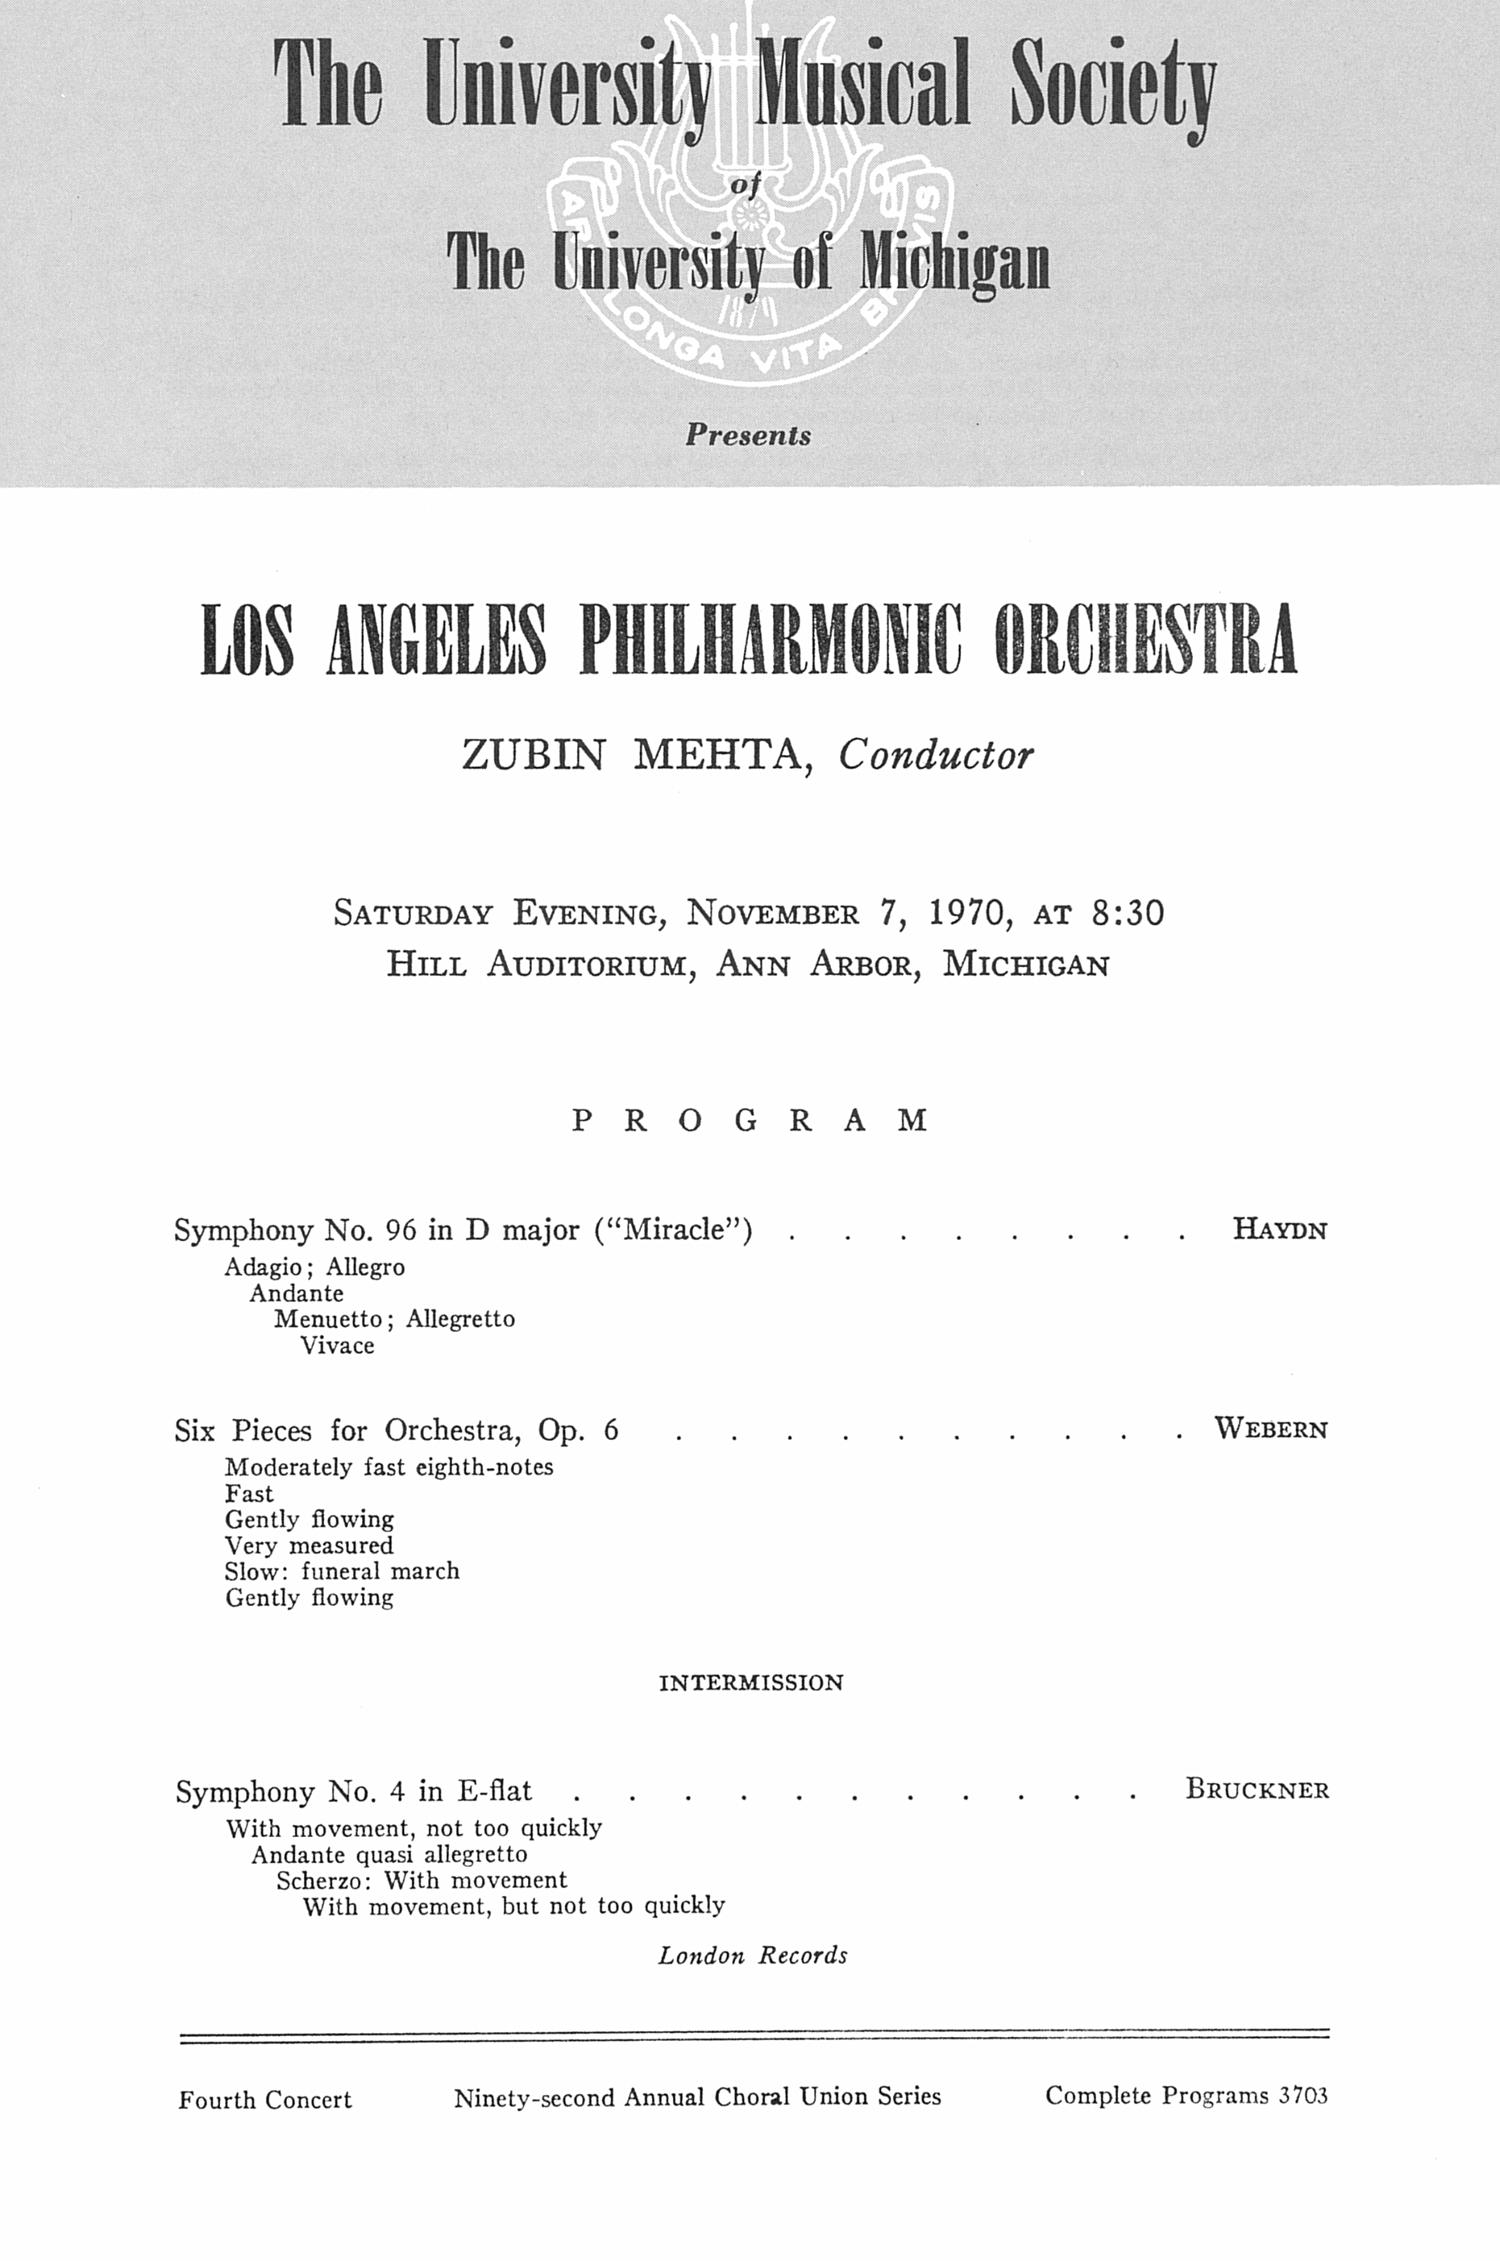 UMS Concert Program, November 7, 1970: Los Angeles Philharmonic Orchestra --  image